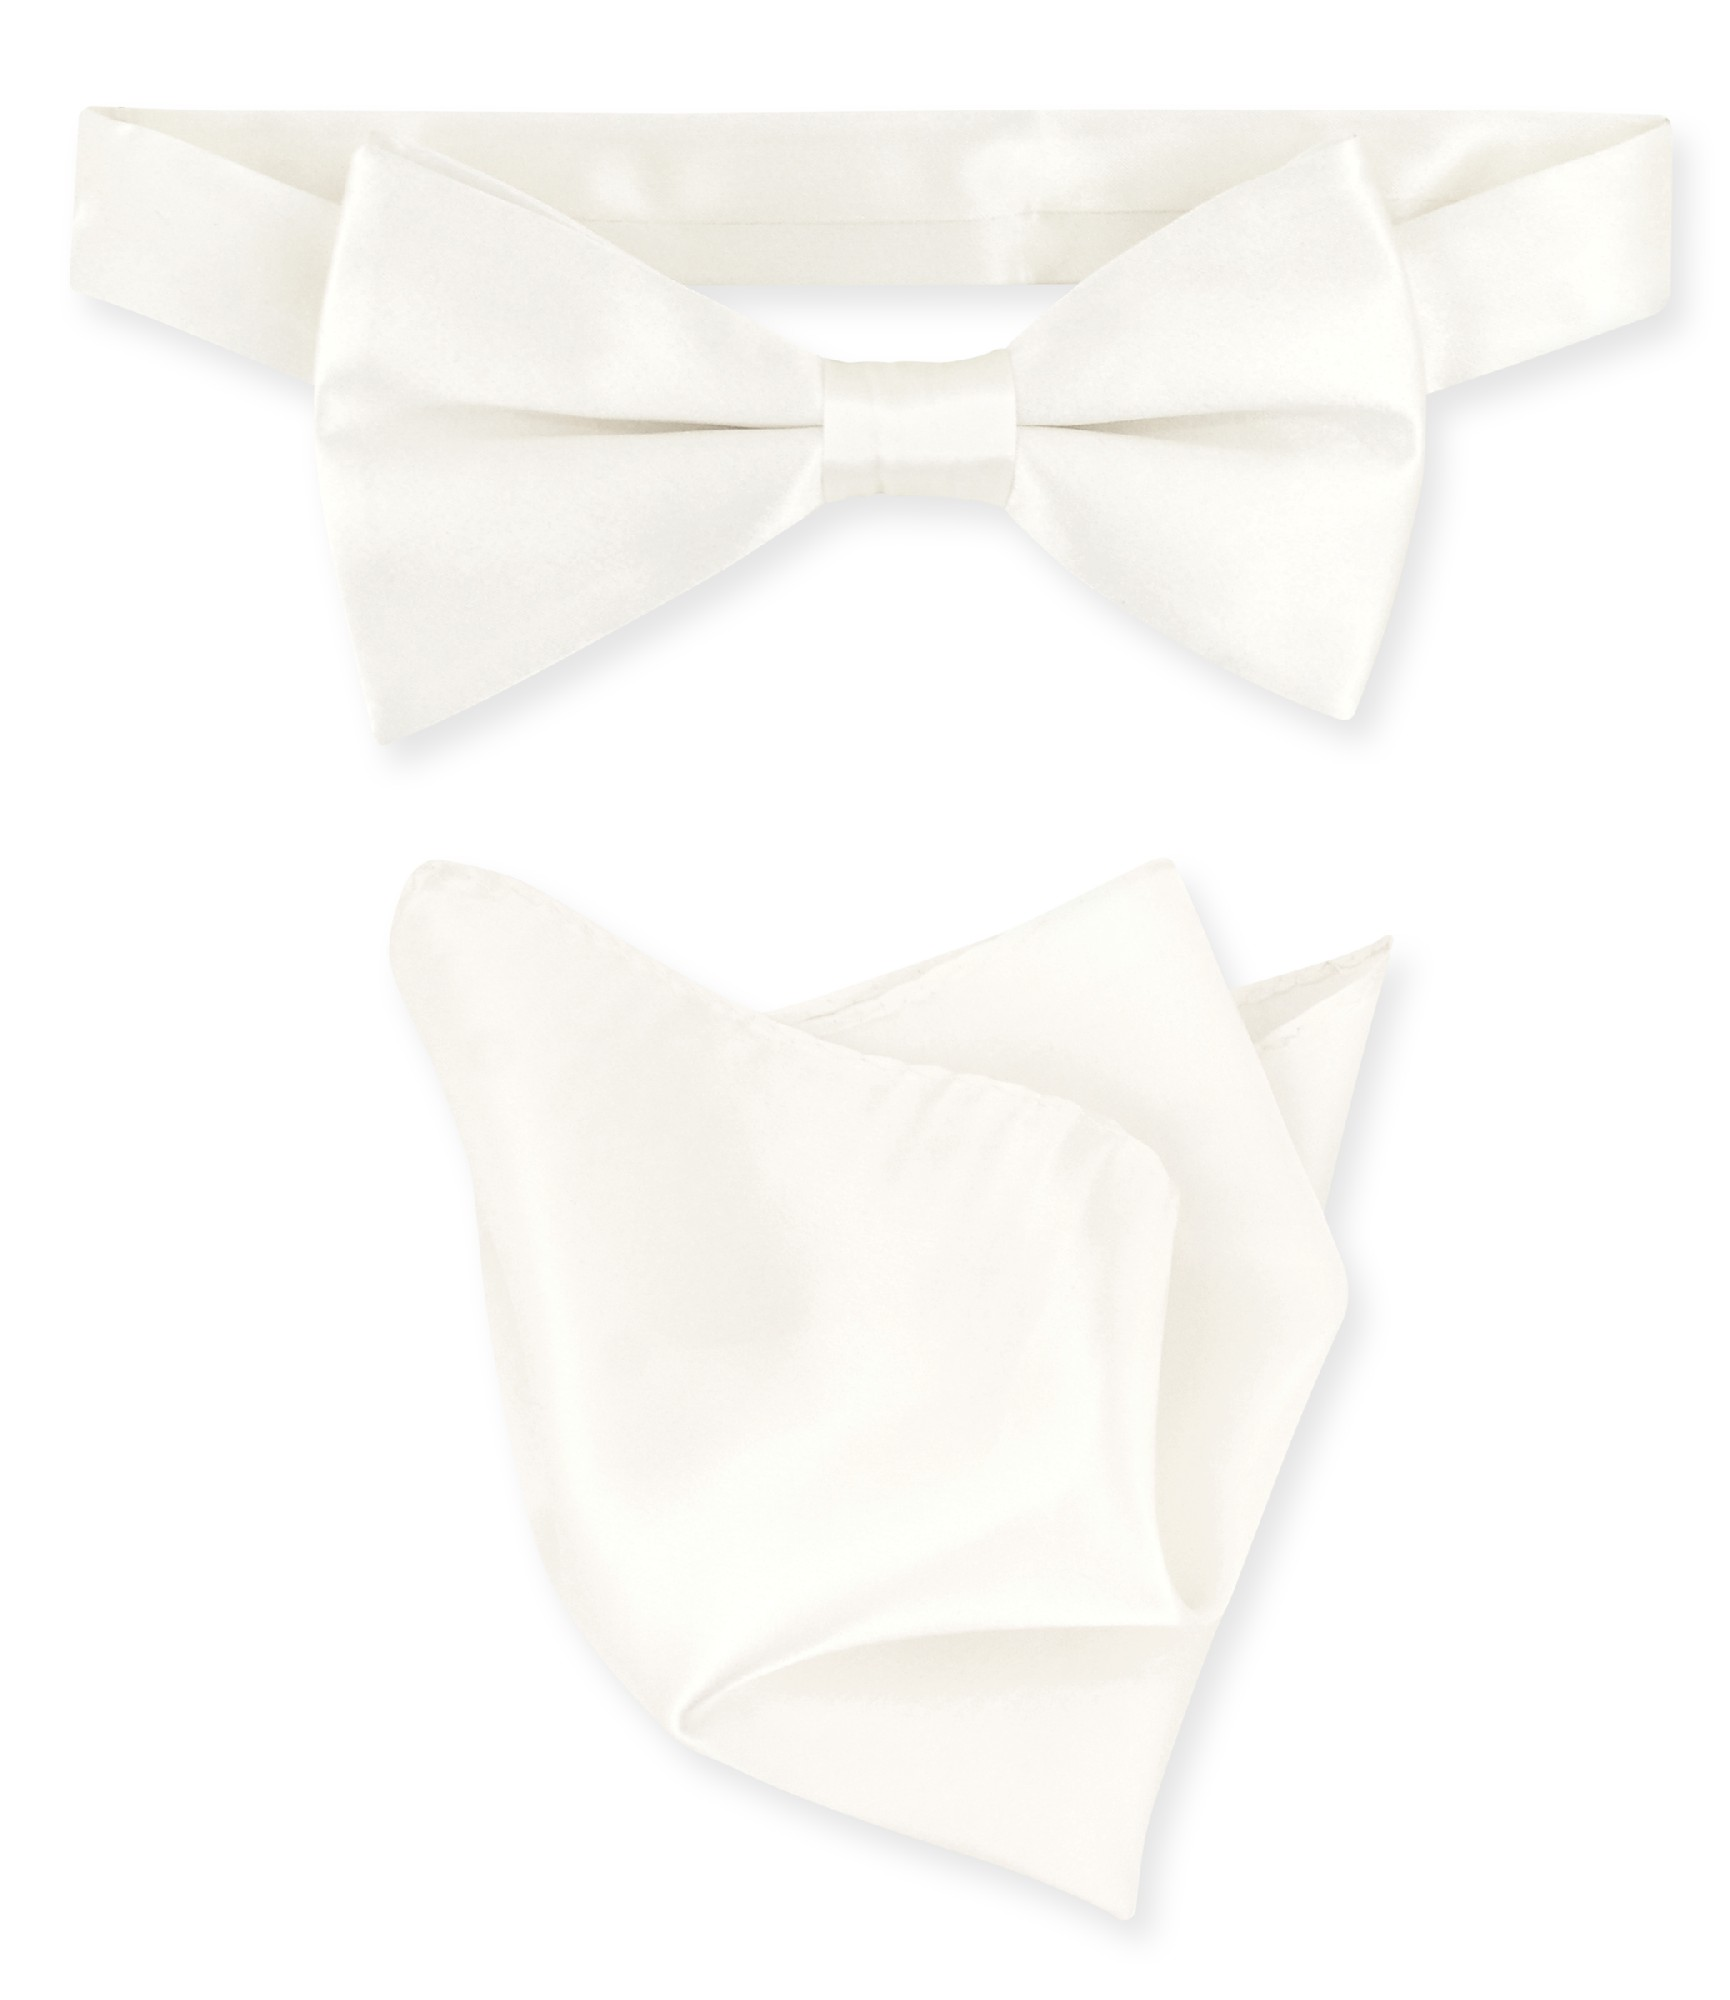 Off-White Ivory Bow Tie Handkerchief Set | Silk BowTie Hanky Set